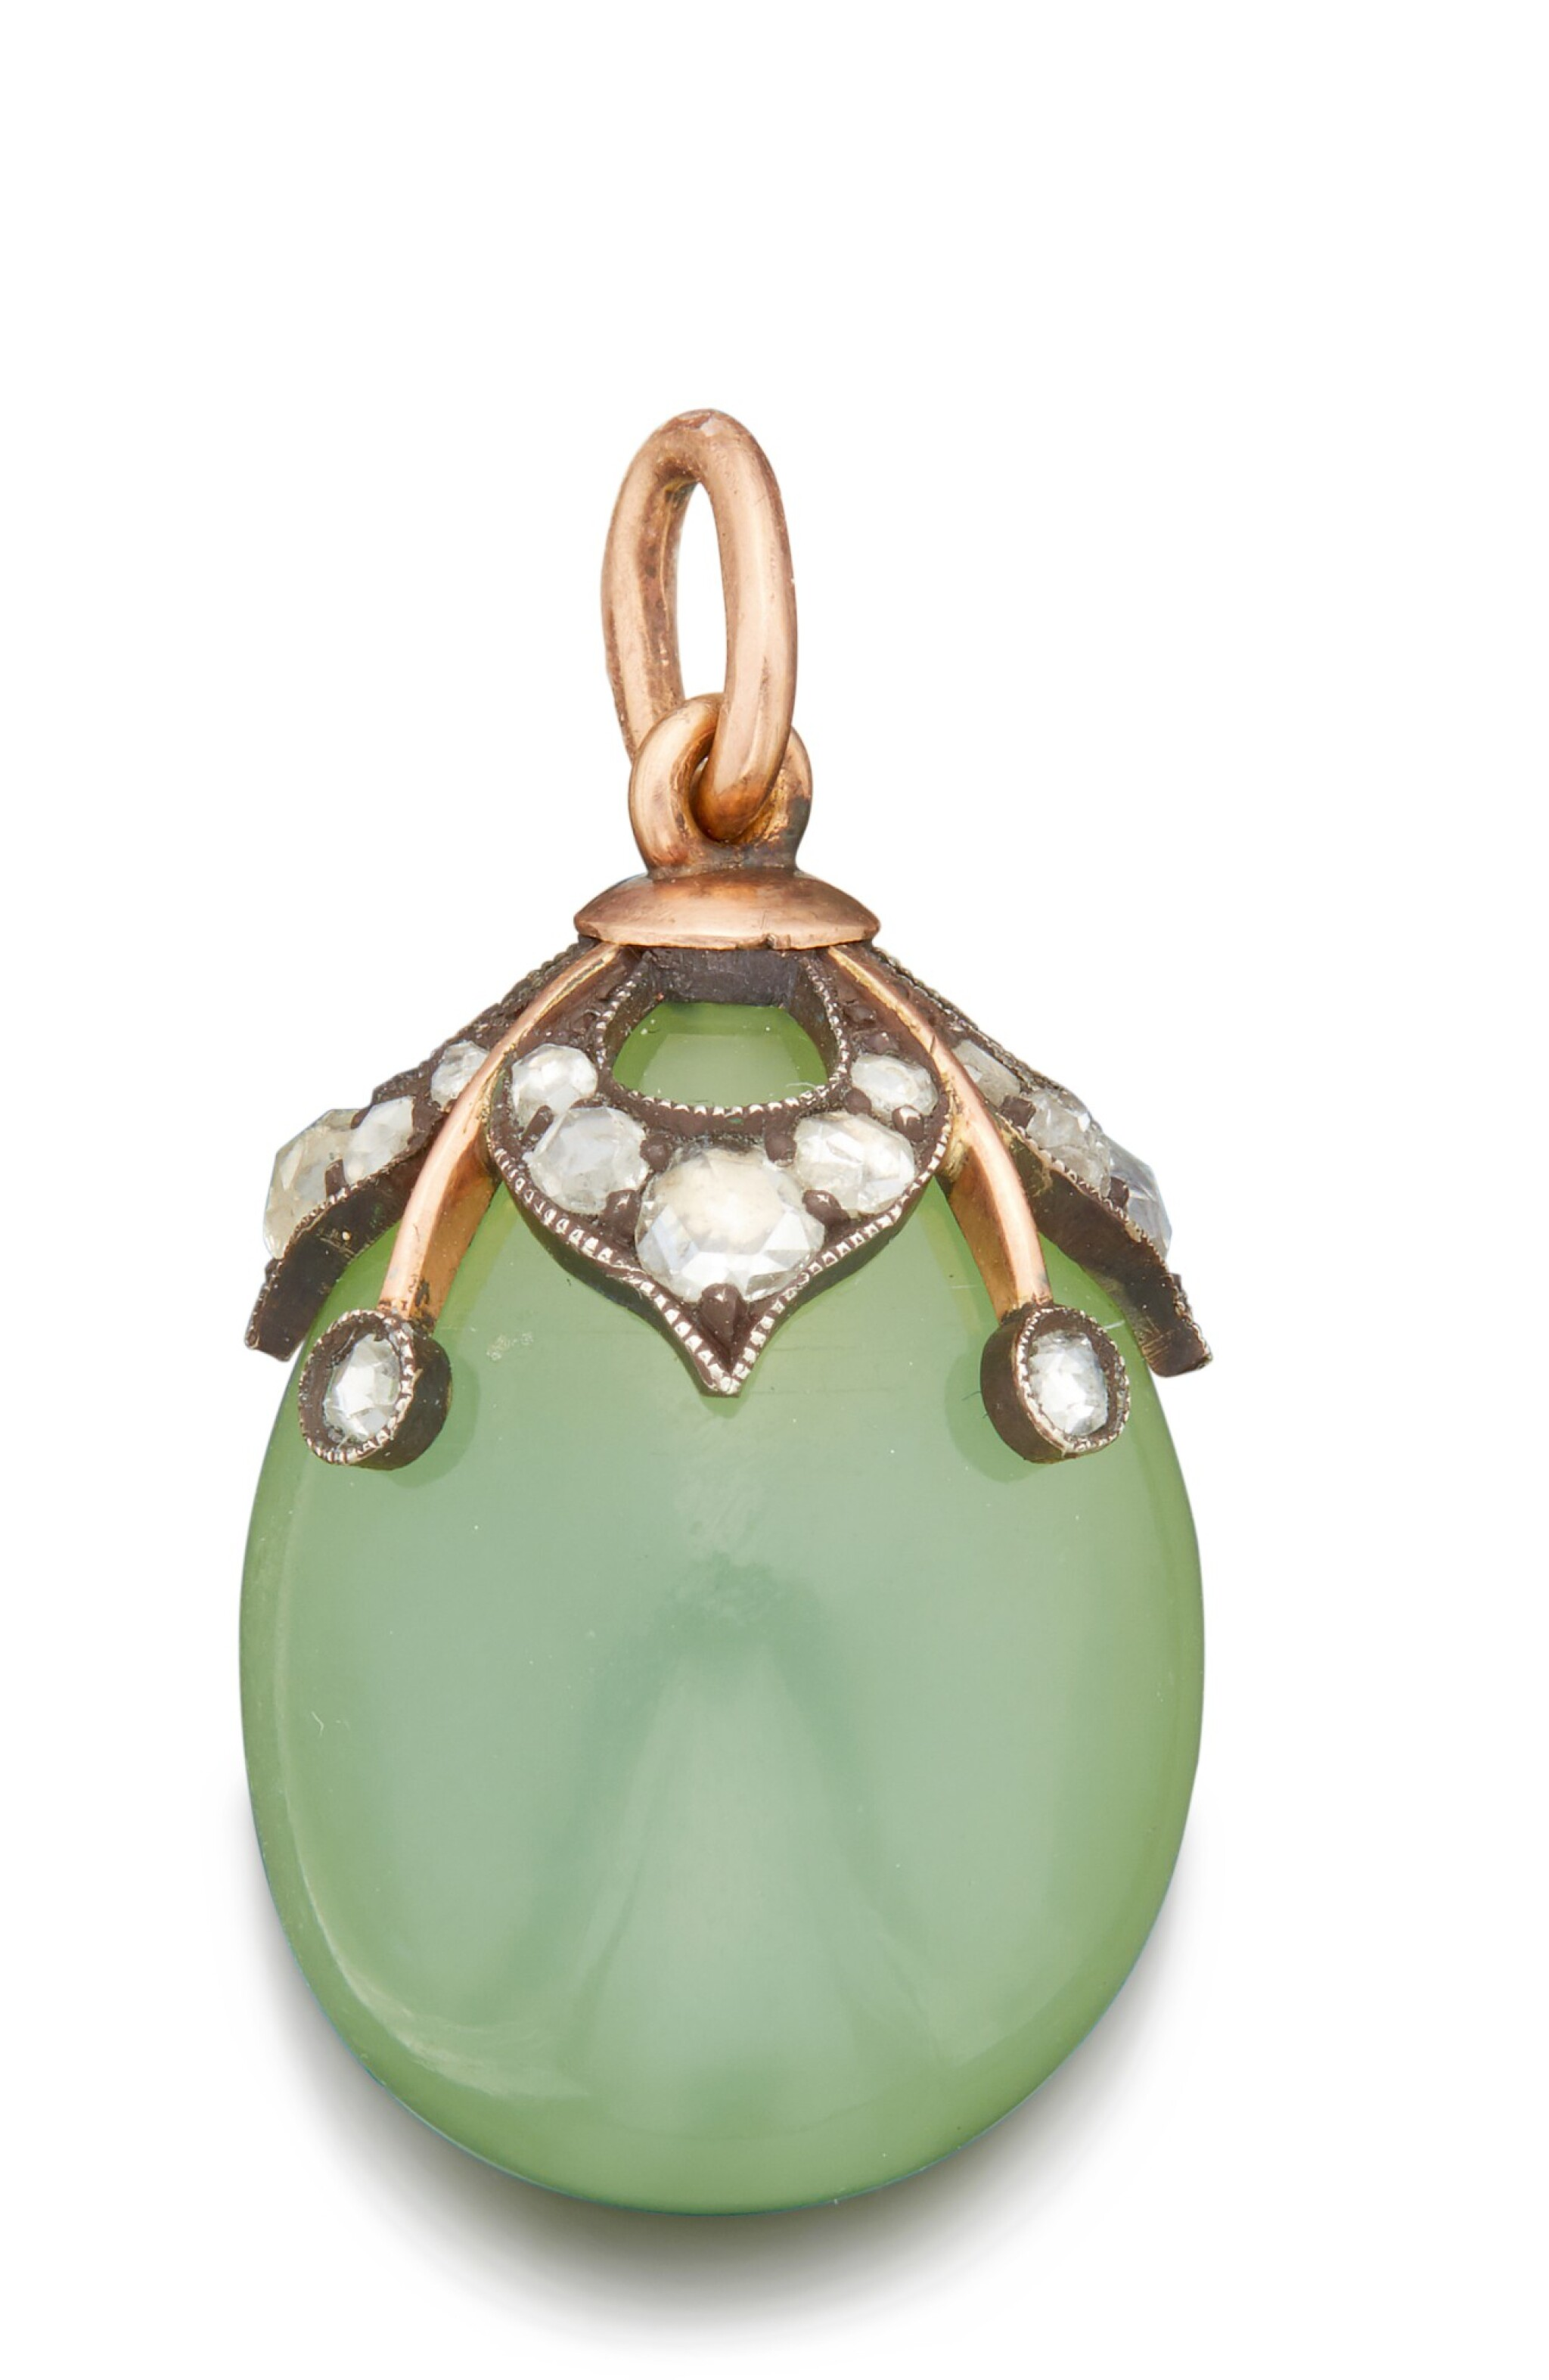 View full screen - View 1 of Lot 46. A LARGE FABERGÉ JEWELED AND GOLD-MOUNTED BOWENITE EGG PENDANT, WORKMASTER MICHAEL PERCHIN, ST PETERSBURG, CIRCA 1890.